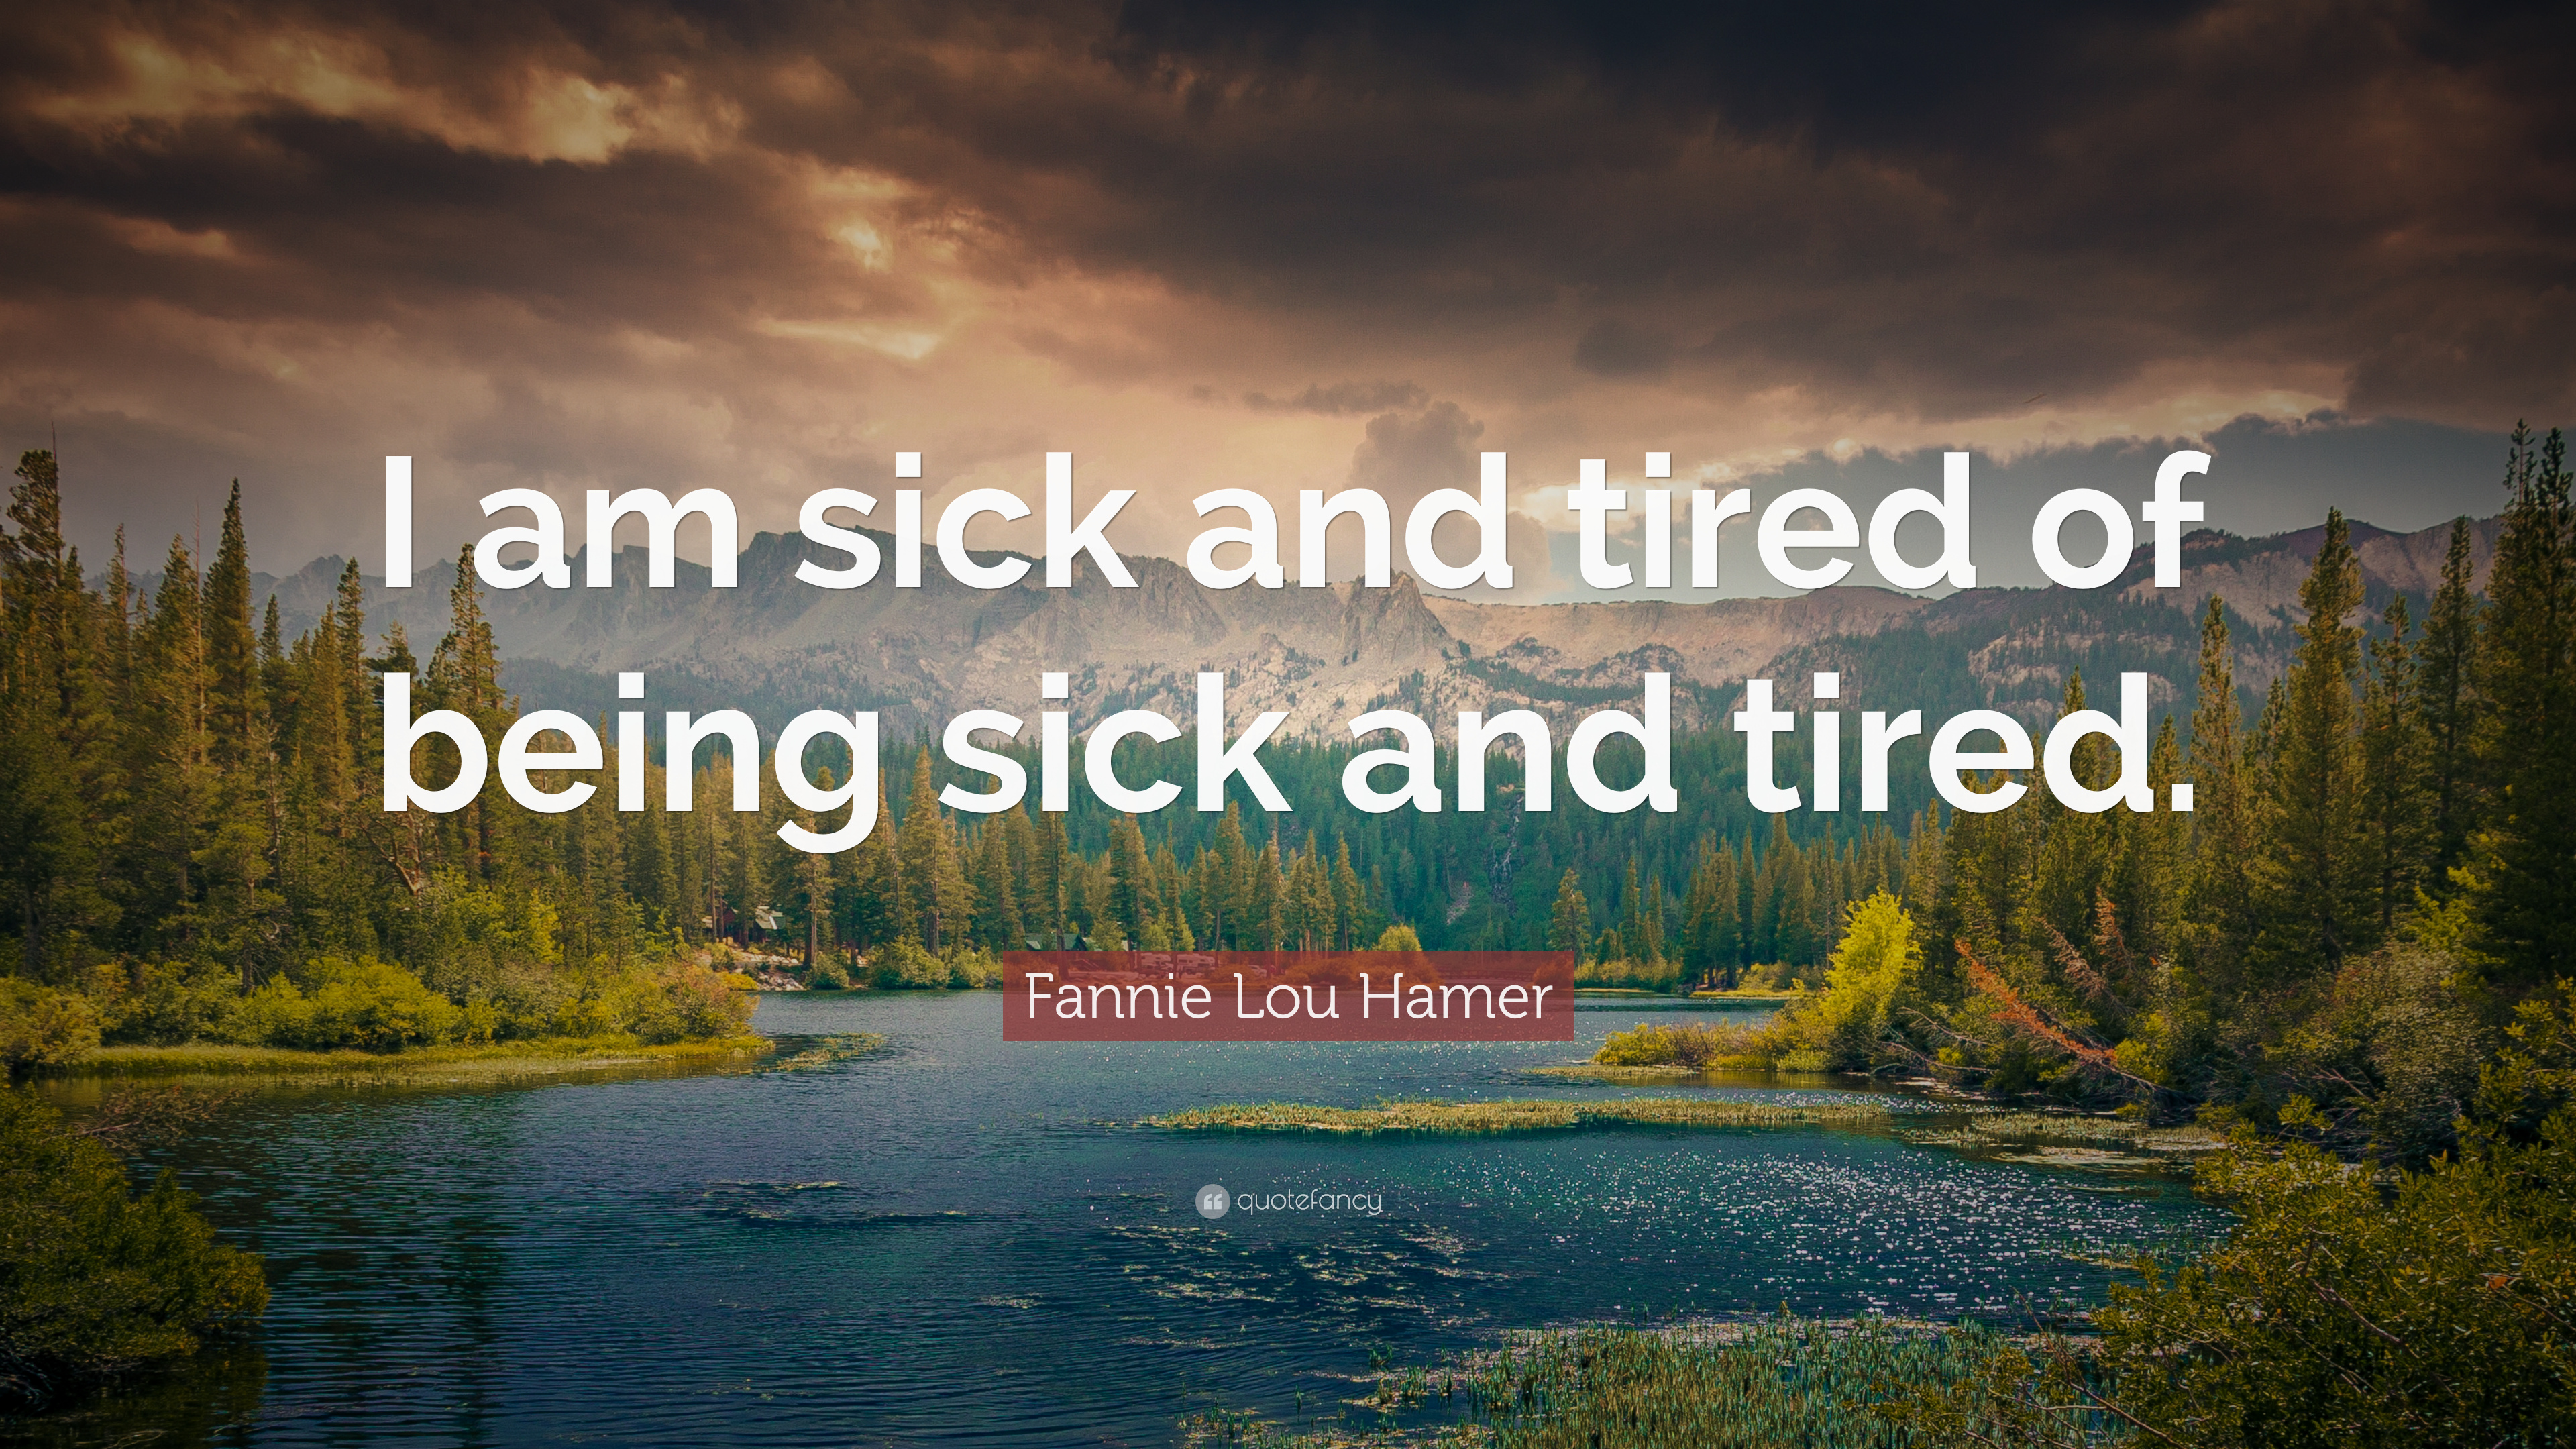 Fannie Lou Hamer Quote I Am Sick And Tired Of Being Sick And Tired